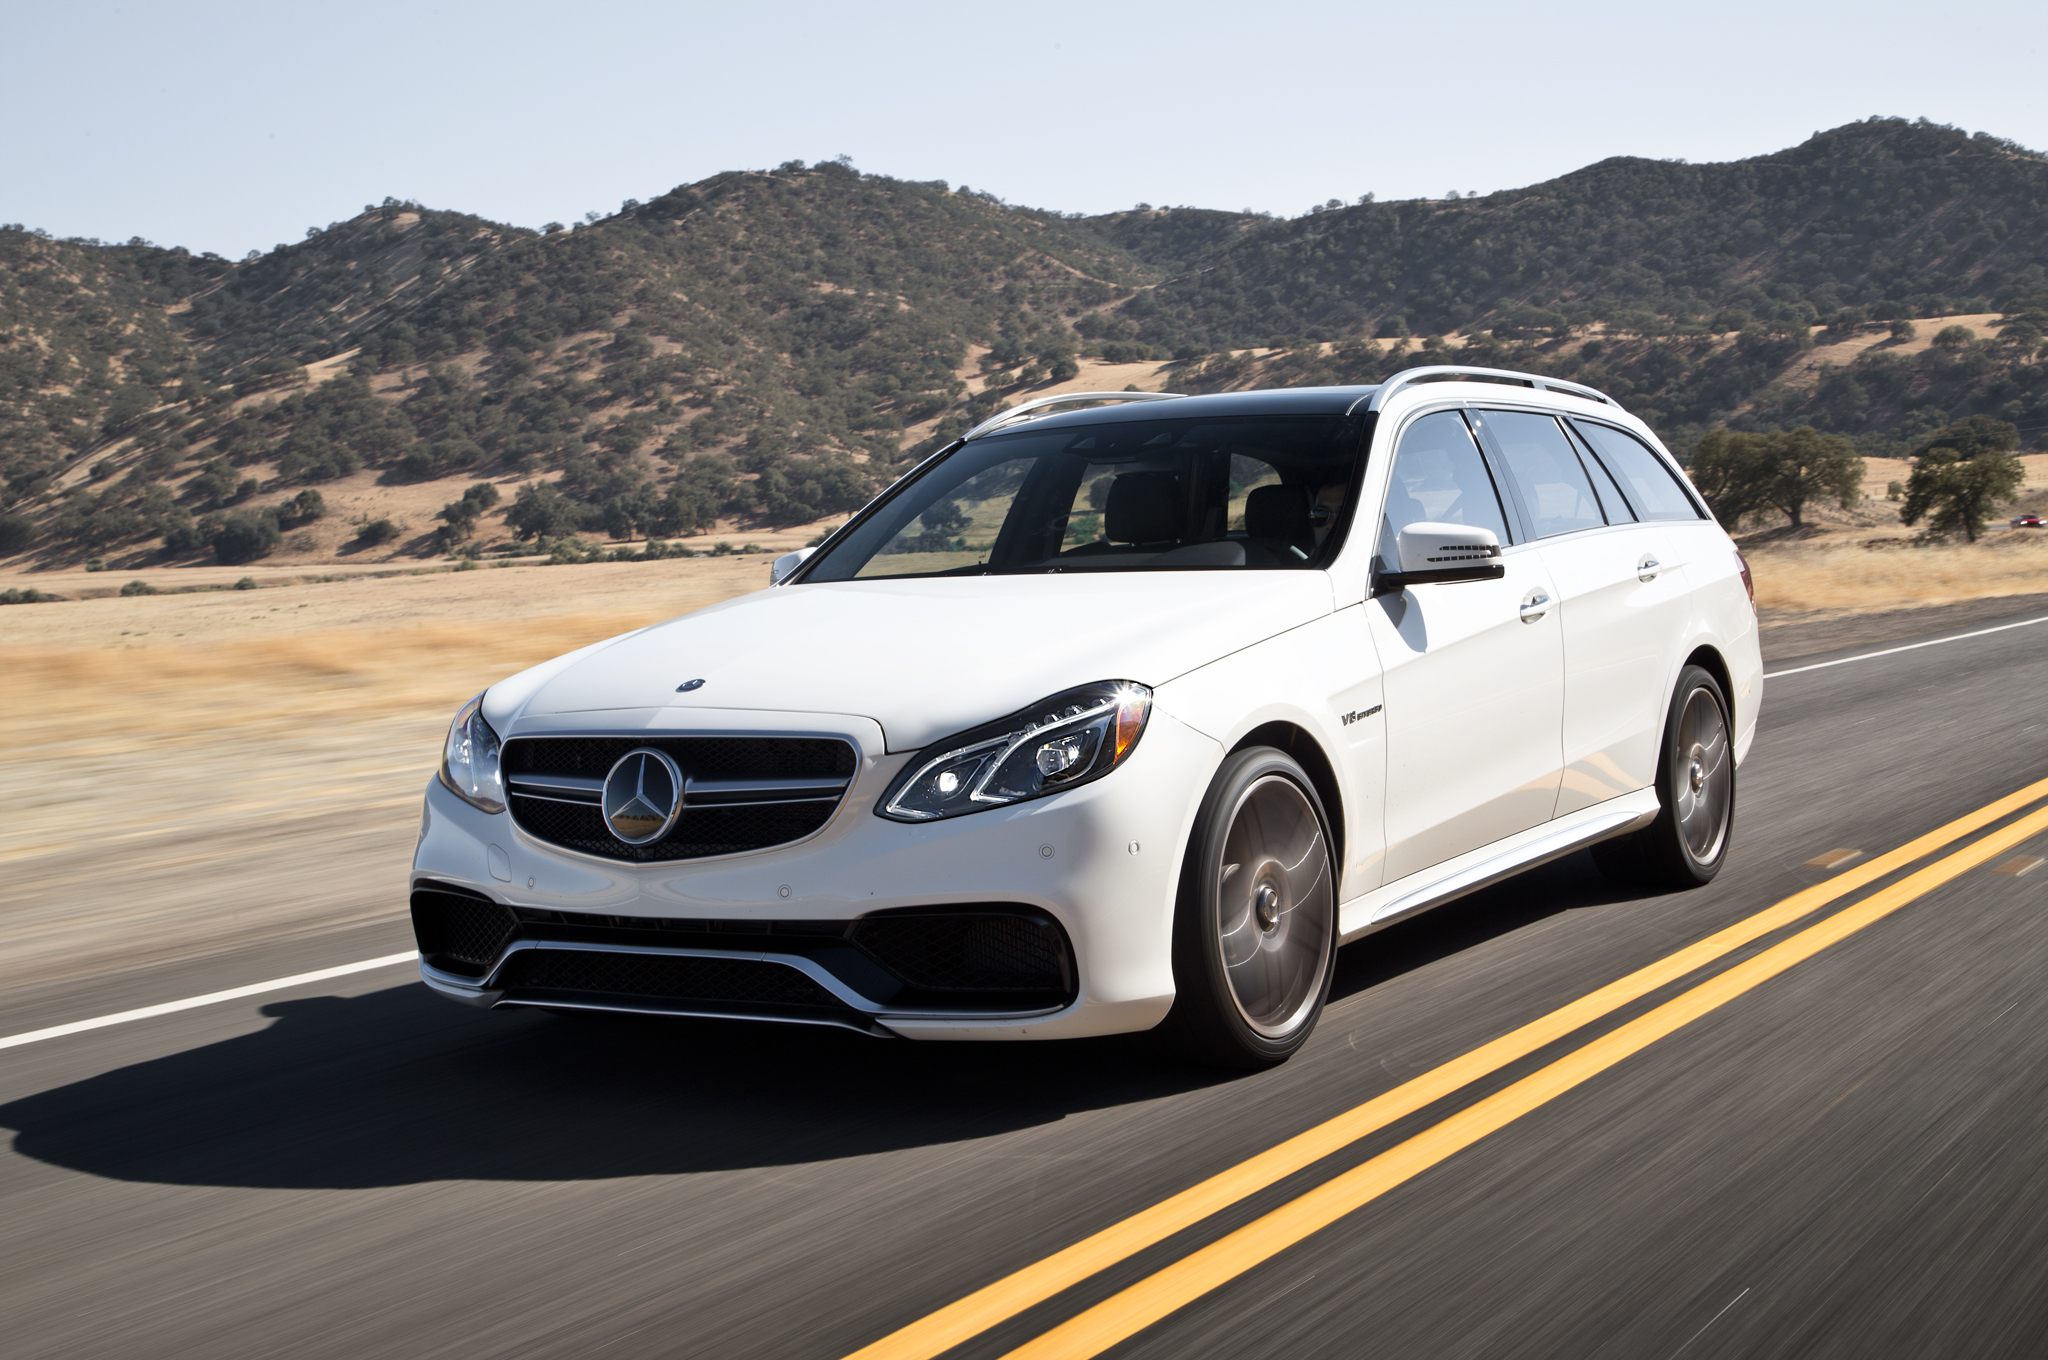 2014 Mercedes Benz E63 Amg S Model 4matic Wagon First Test Motor Trend